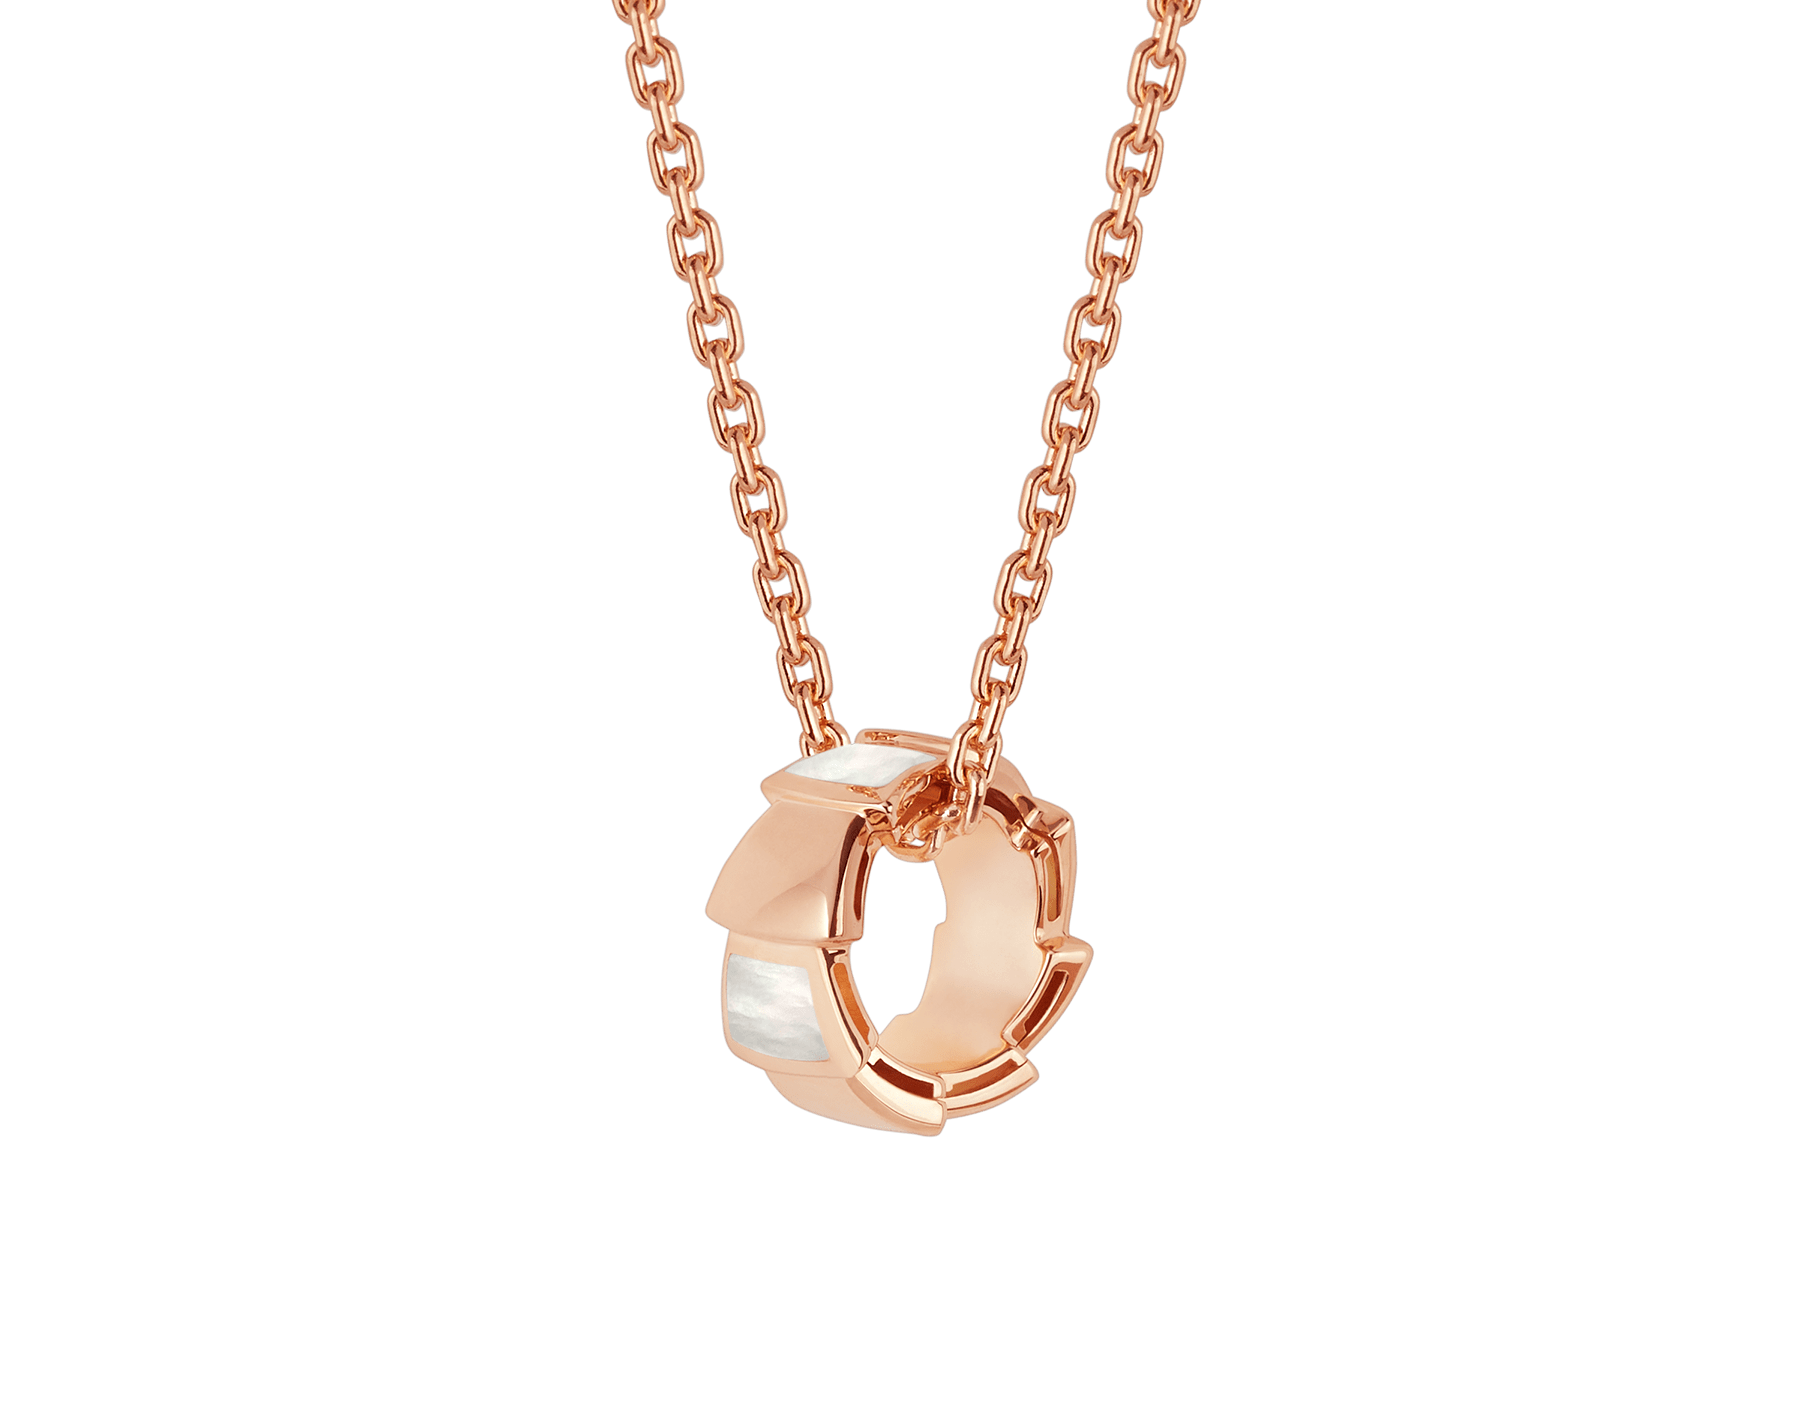 Serpenti Viper 18 kt rose gold necklace with pendant set with mother-of-pearl elements 355795 image 1